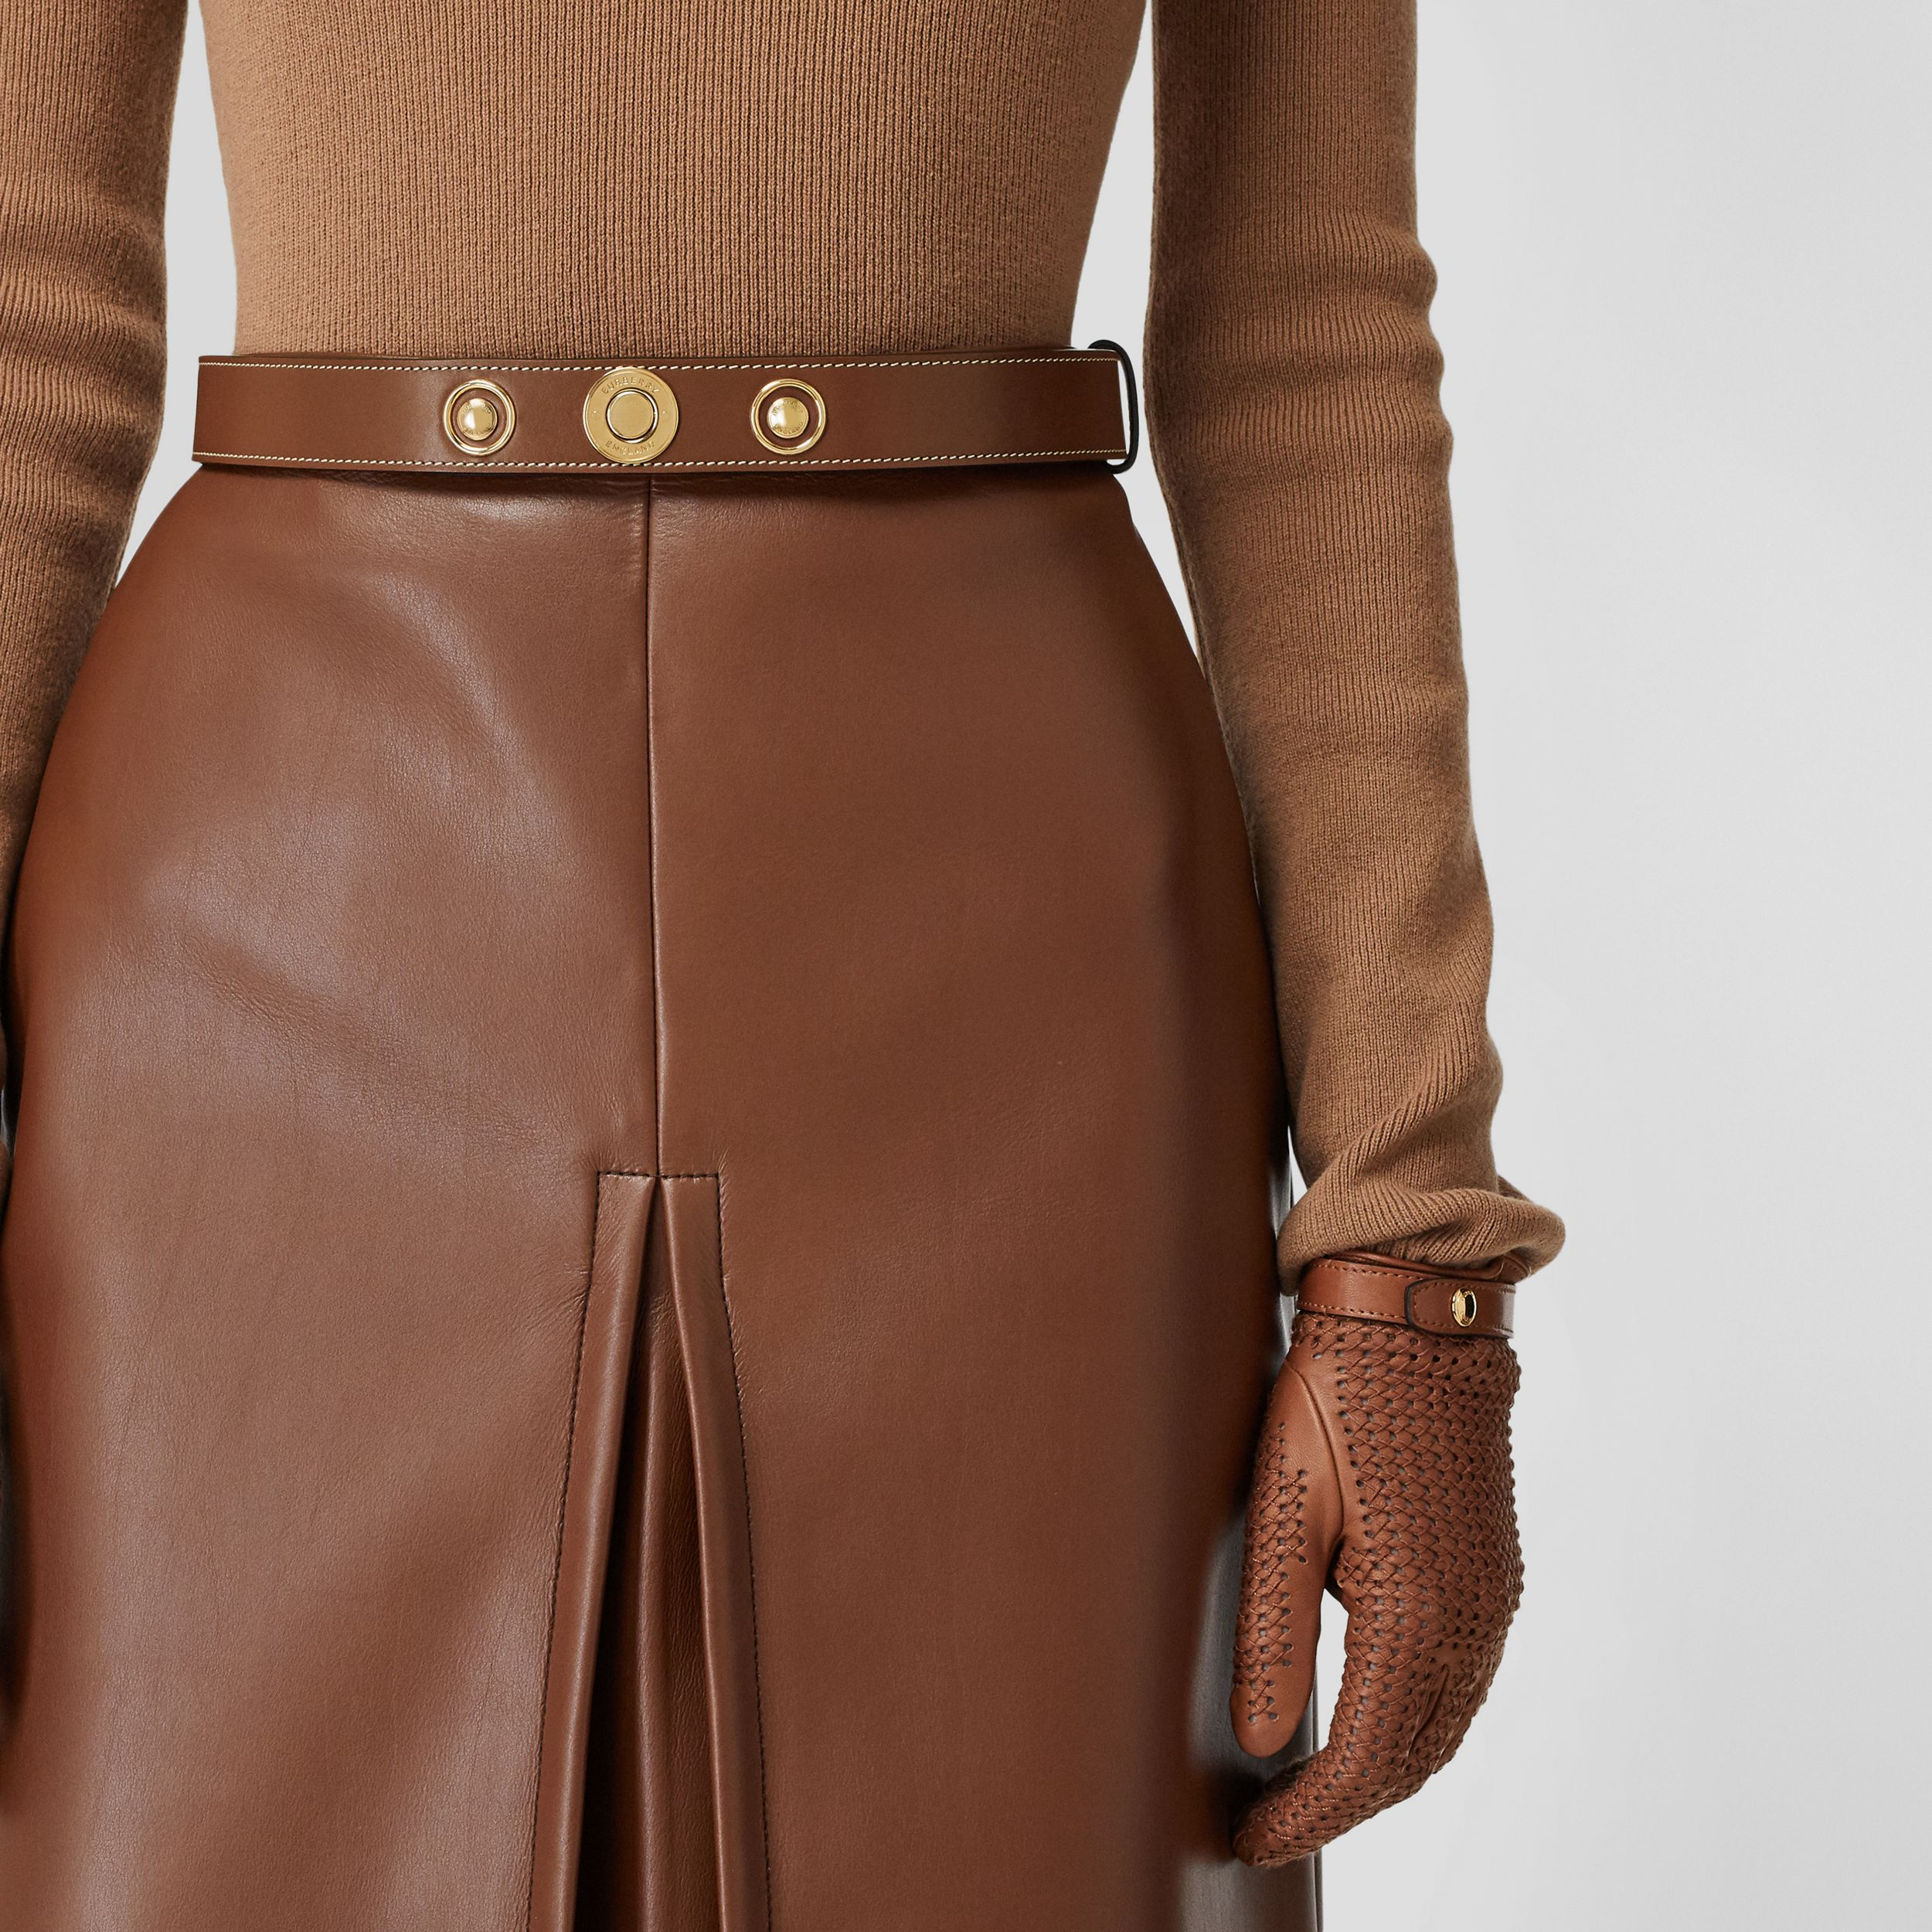 Triple Stud Leather Belt in Tan | Burberry Singapore - 3